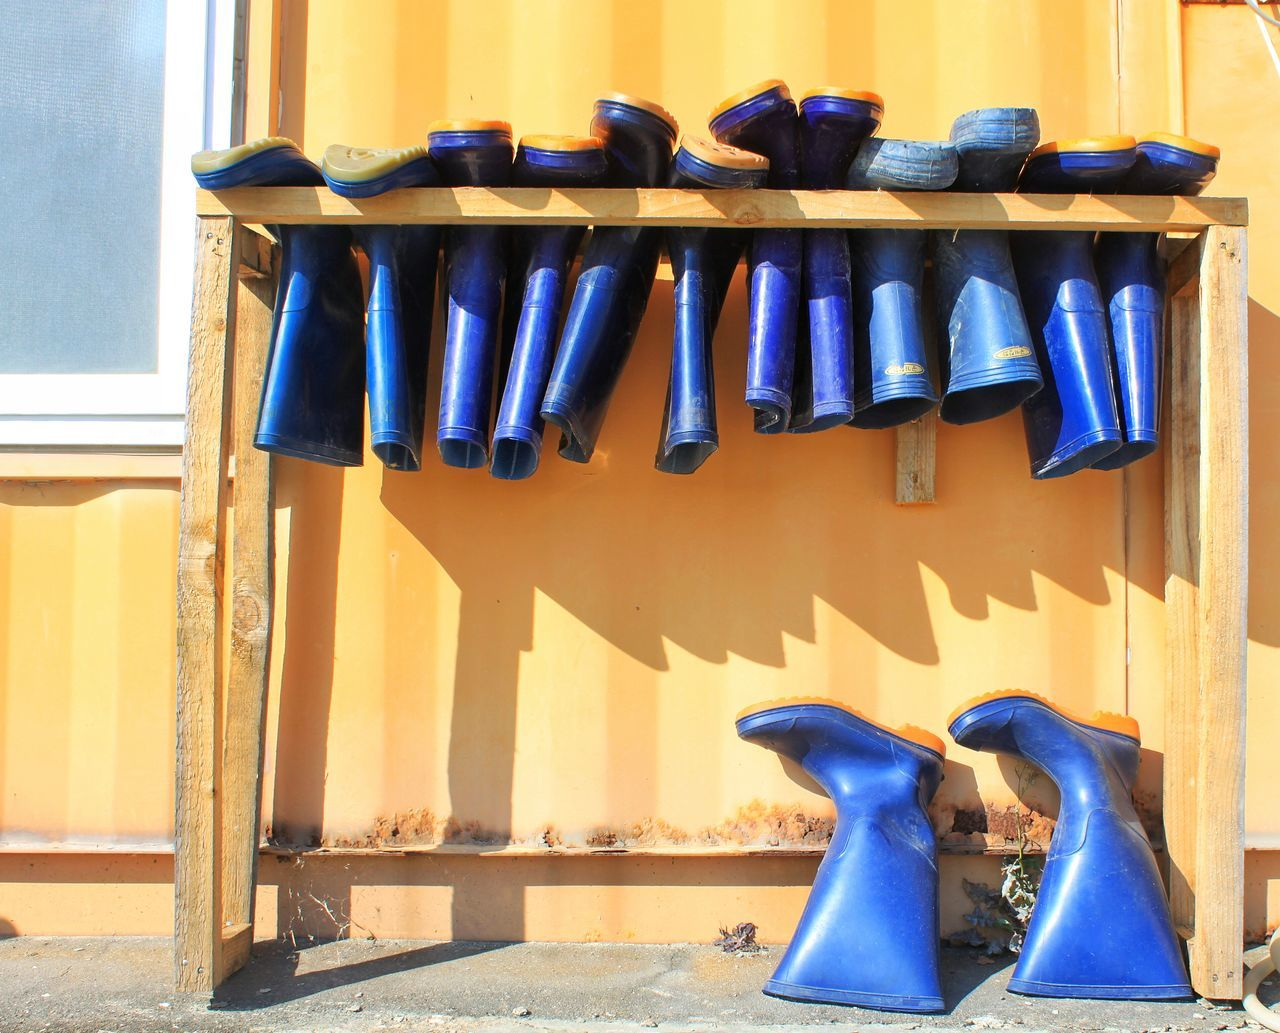 Blue Rubber Boots On Wooden Structure Against Wall